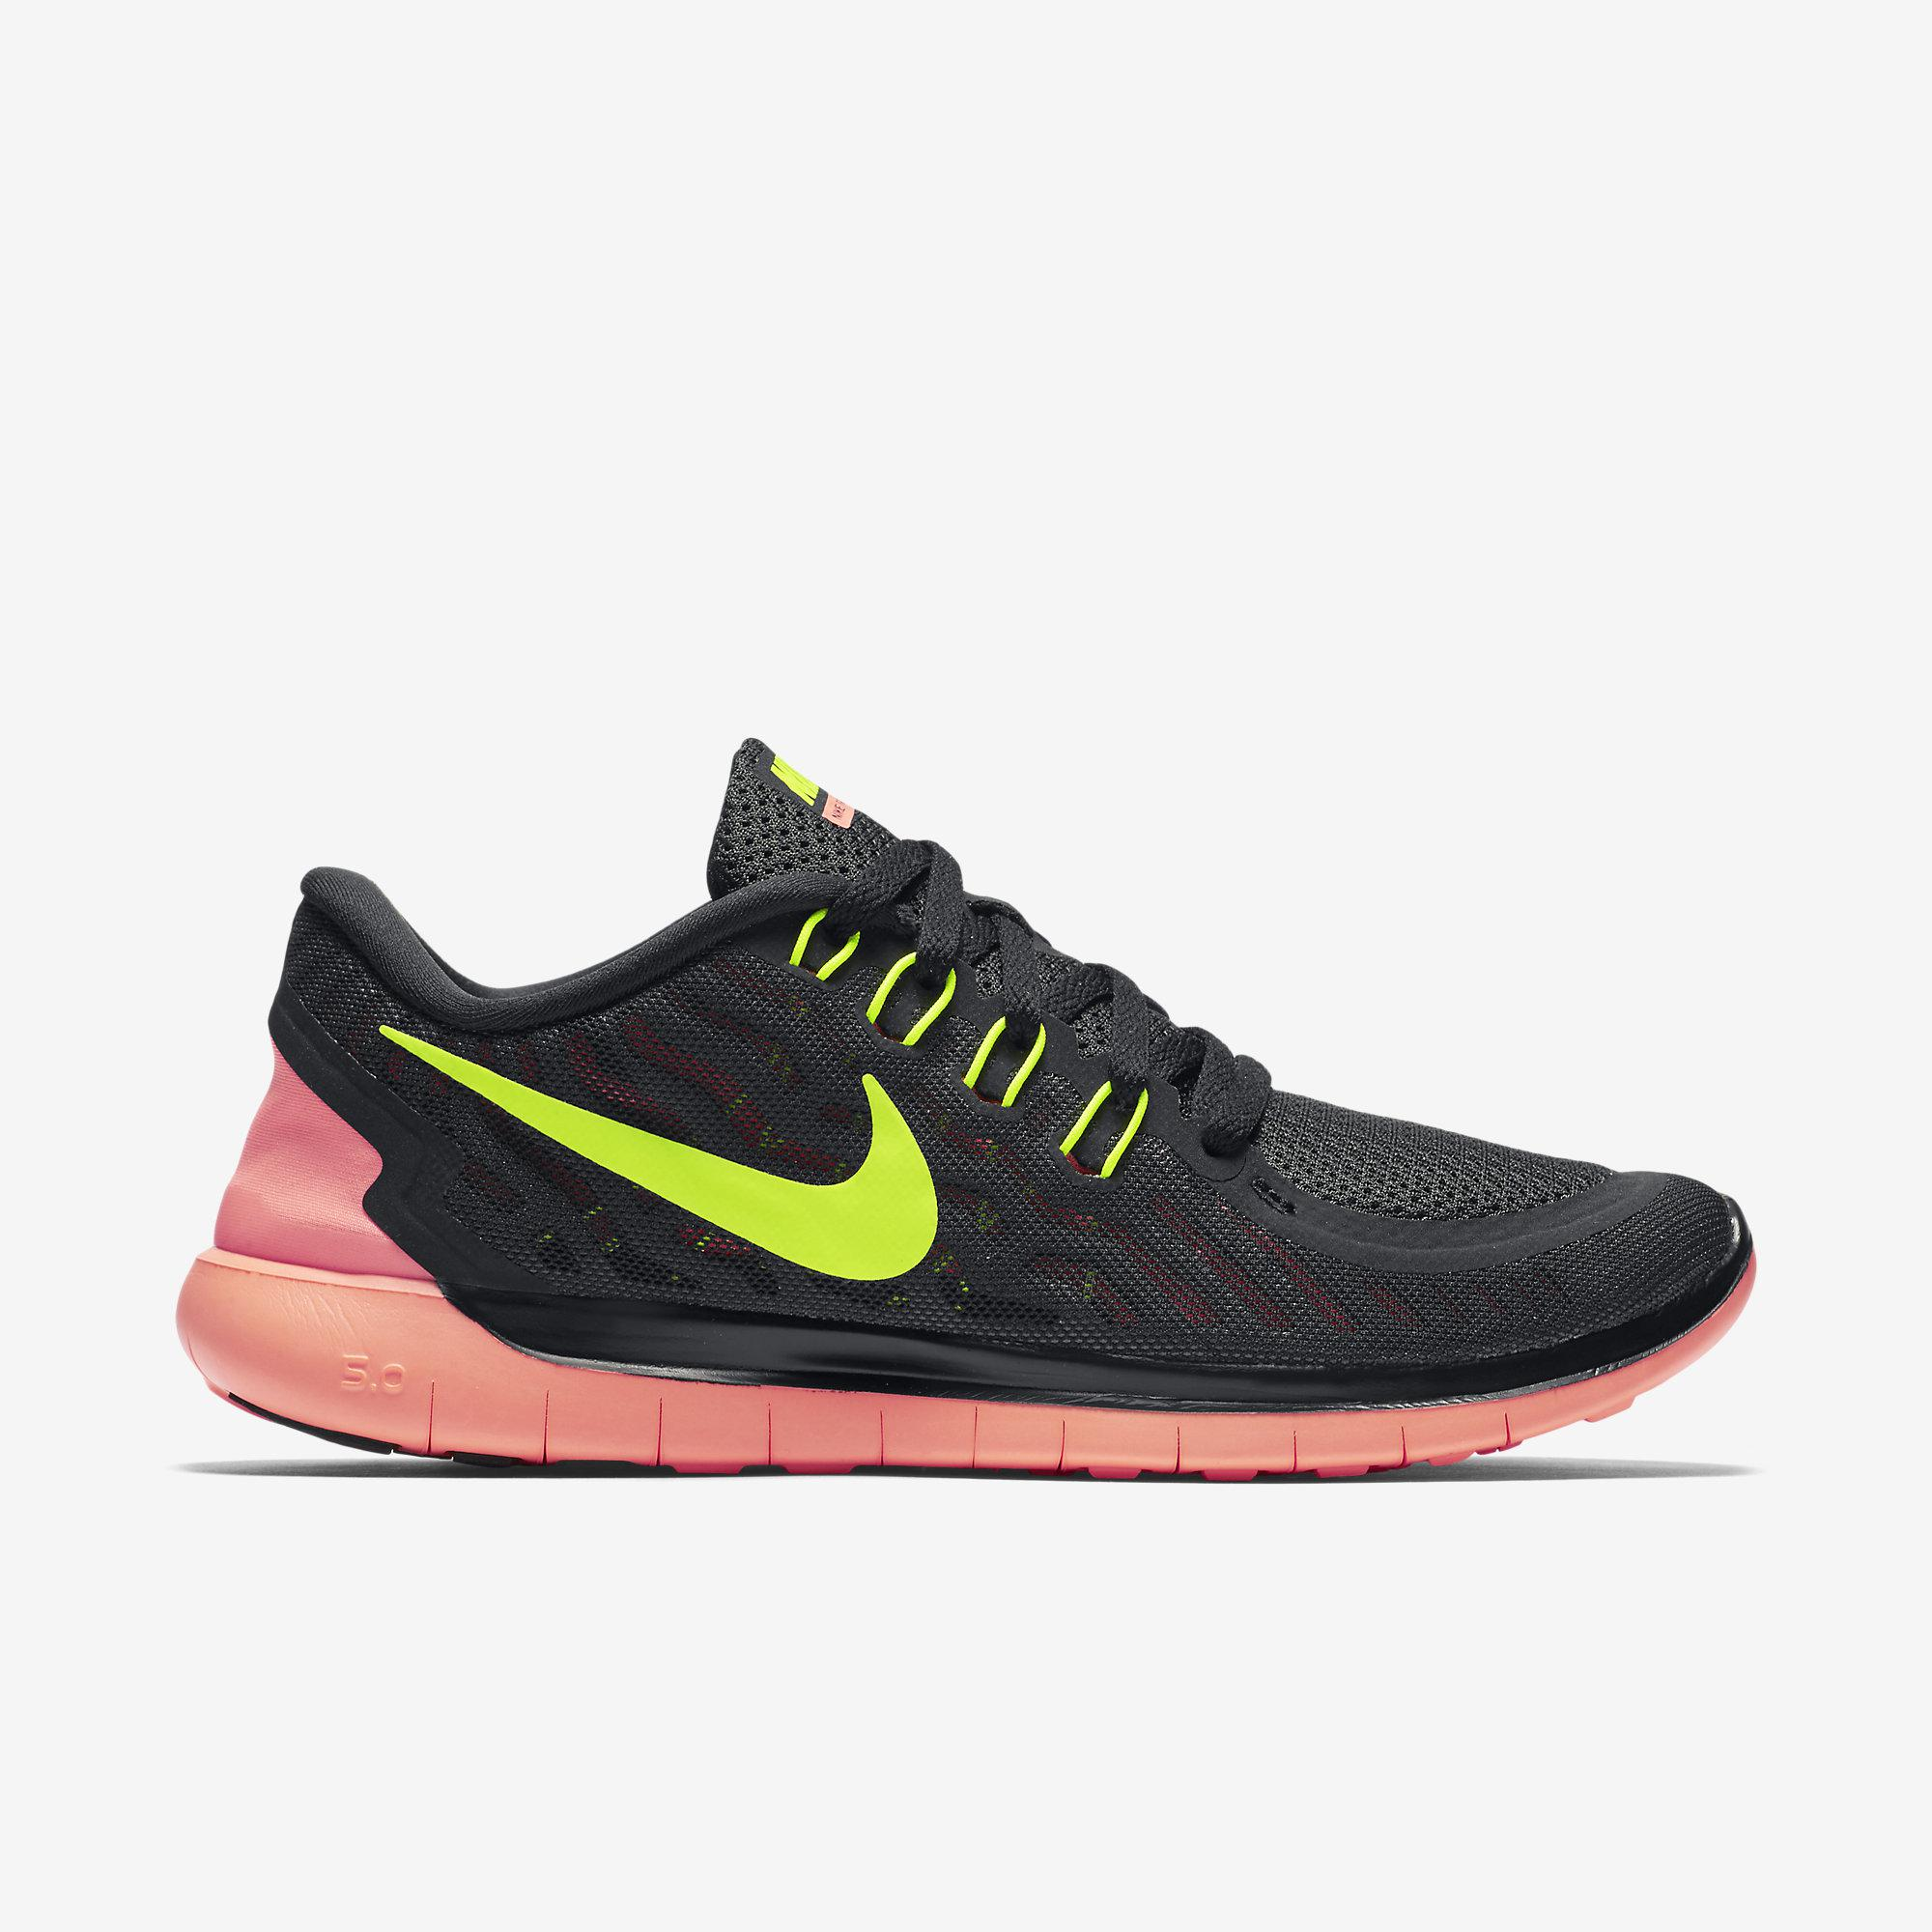 wholesale dealer 73fa9 324d9 Nike Womens Free 5.0 Running Shoes - Black Yellow Mango - Tennisnuts.com